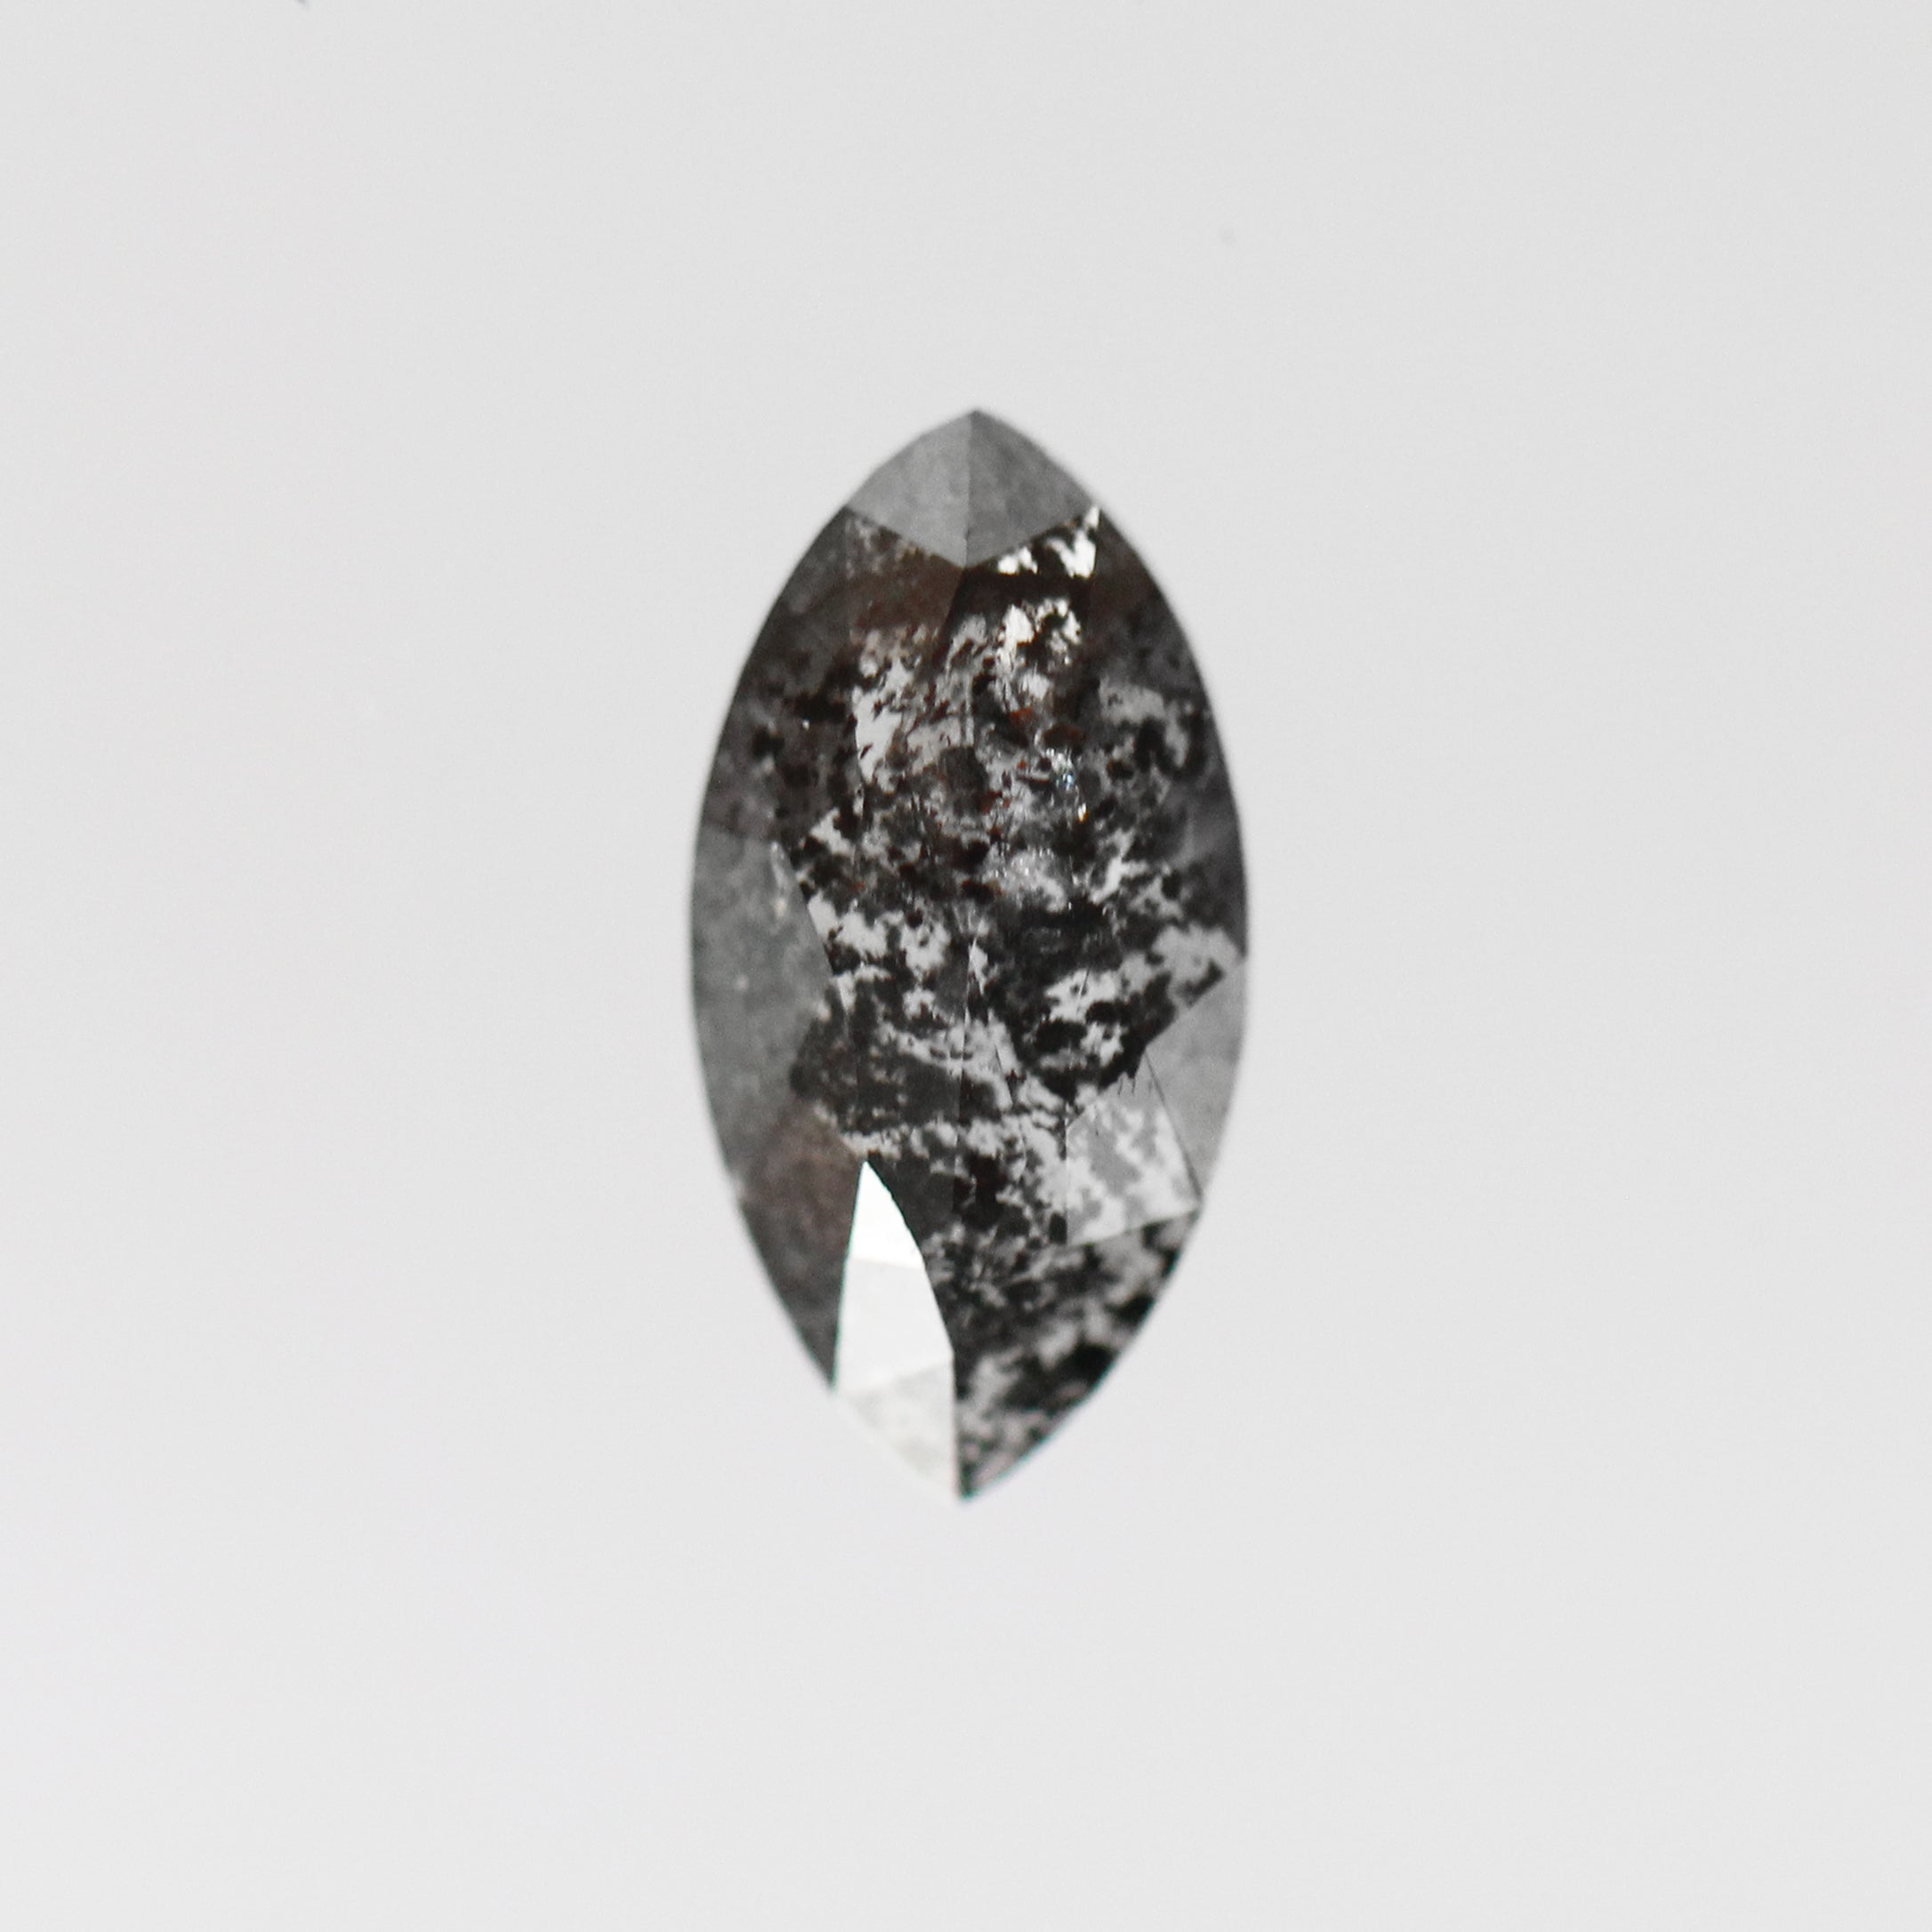 0.98 Carat Marquise Diamond - Inventory Code MRB98 - Celestial Diamonds ® by Midwinter Co.